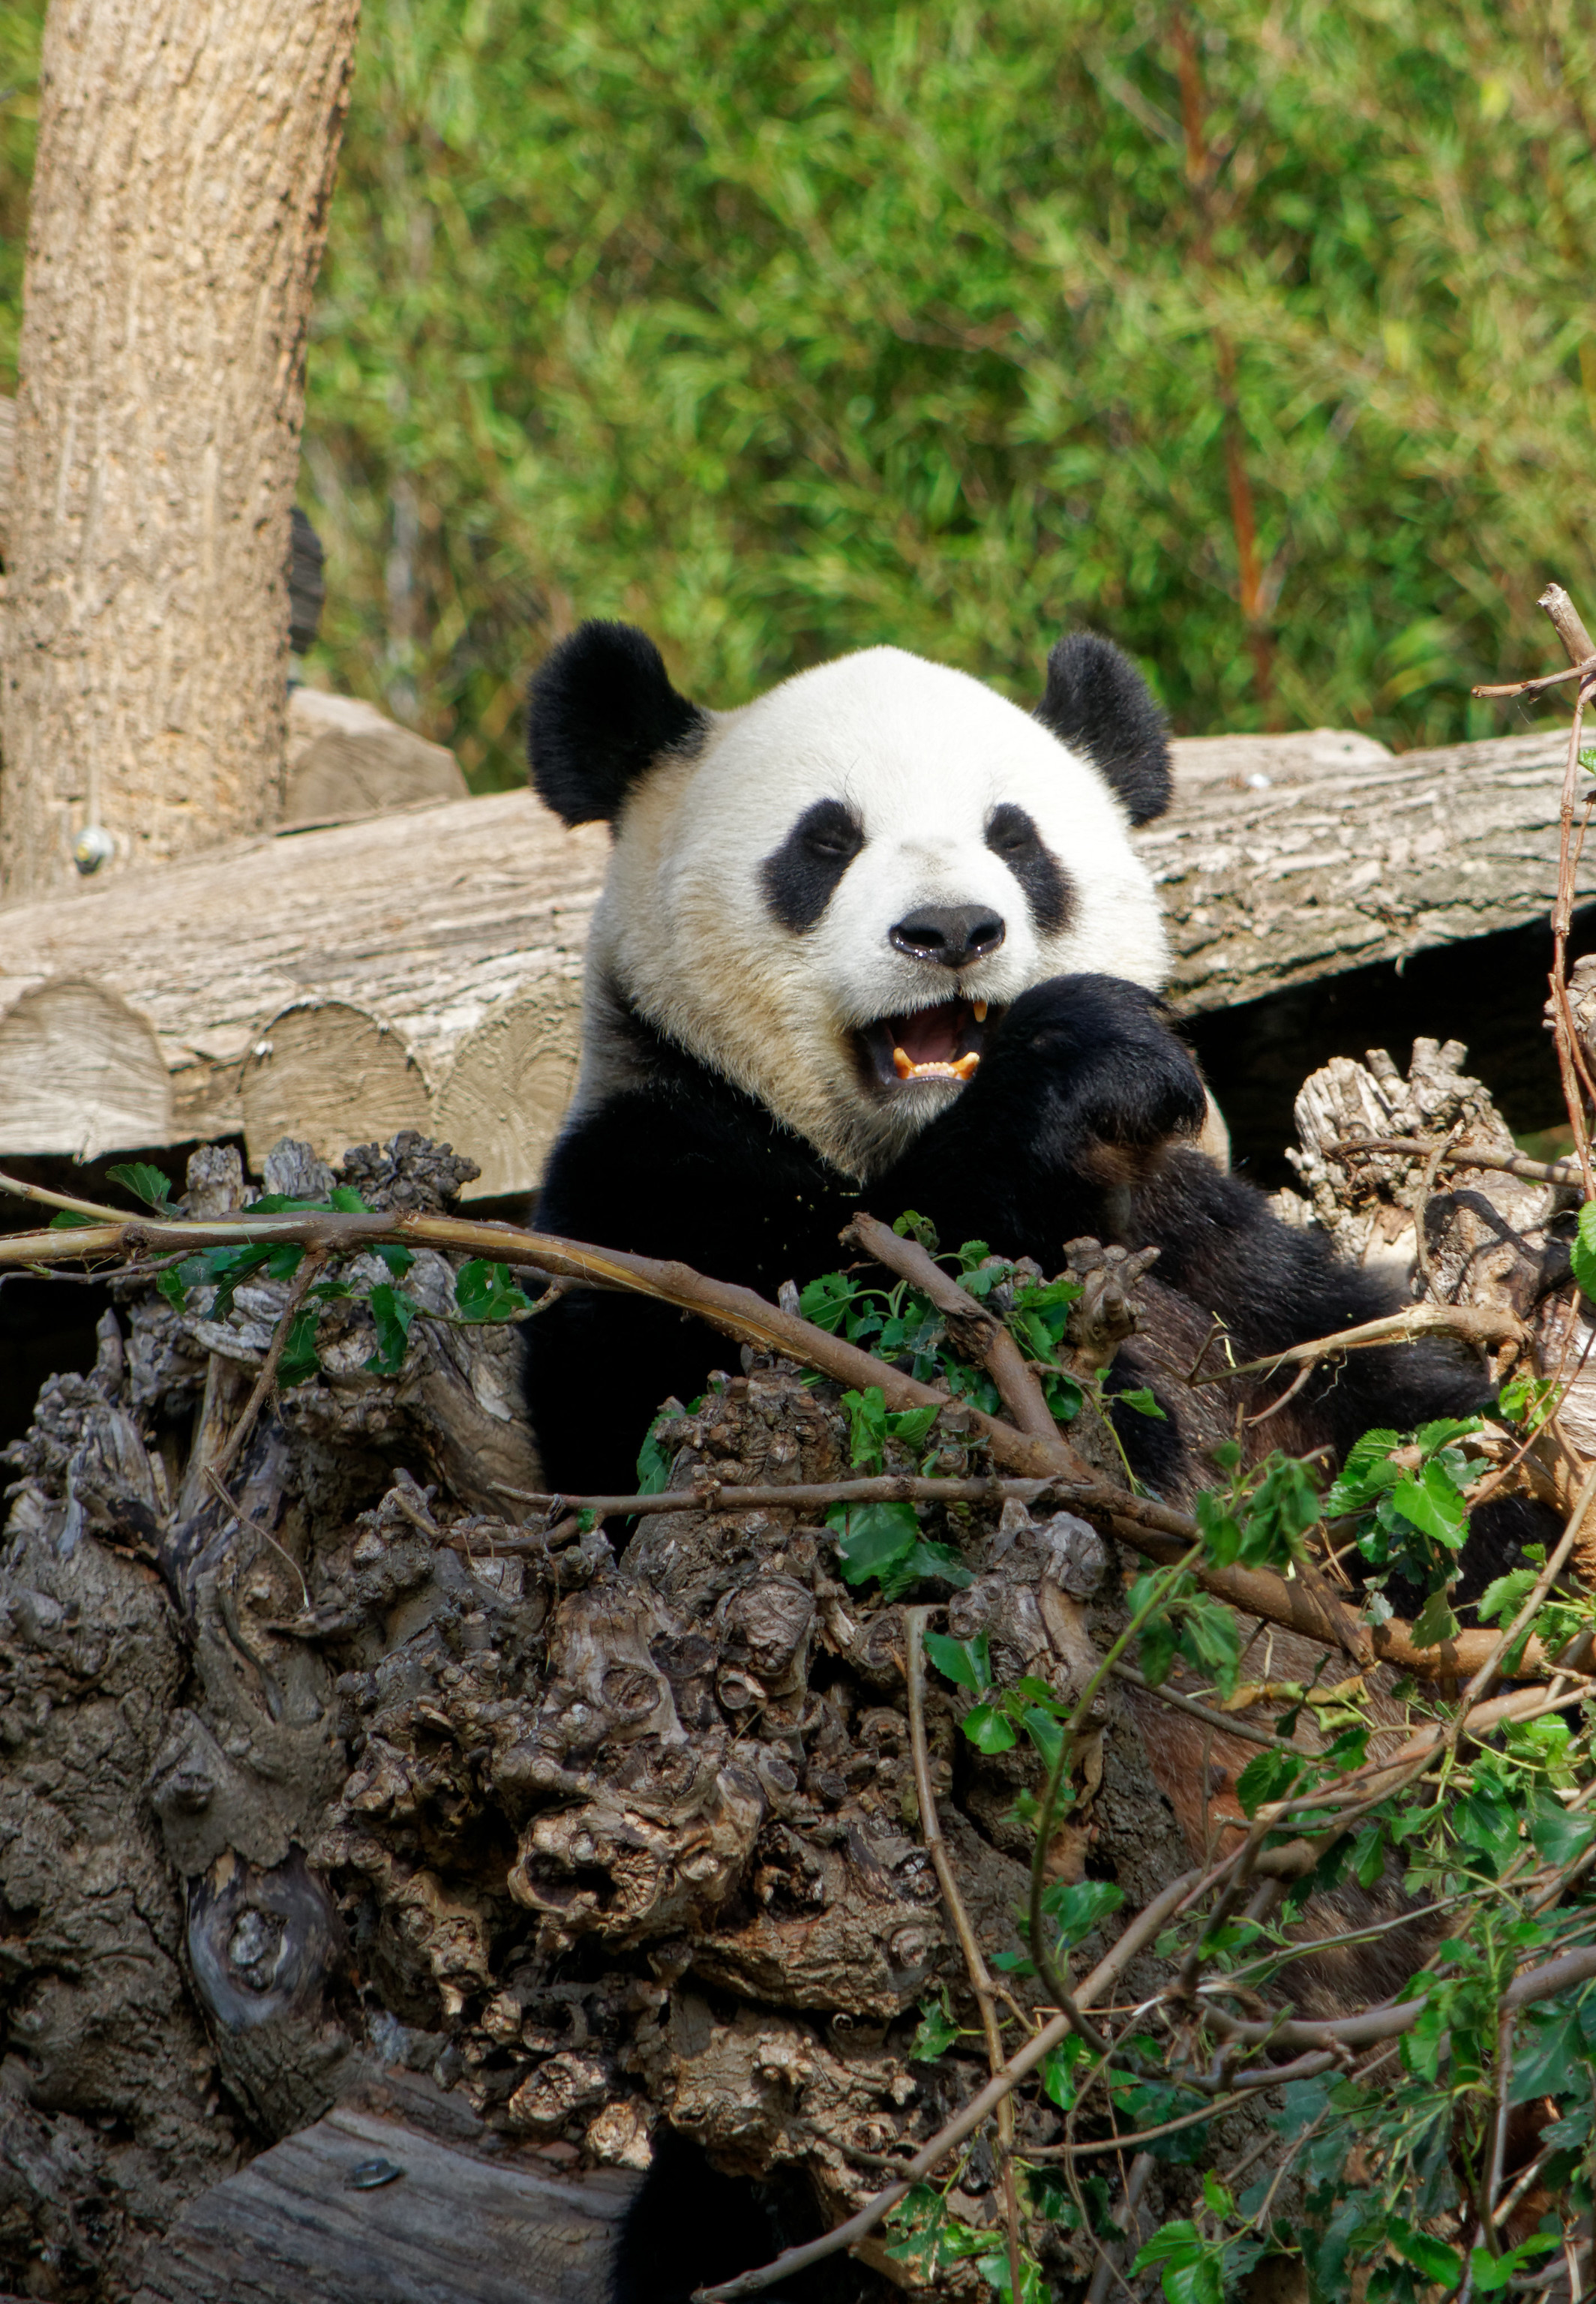 138572 download wallpaper Animals, Panda, Bear, Funny, Animal screensavers and pictures for free